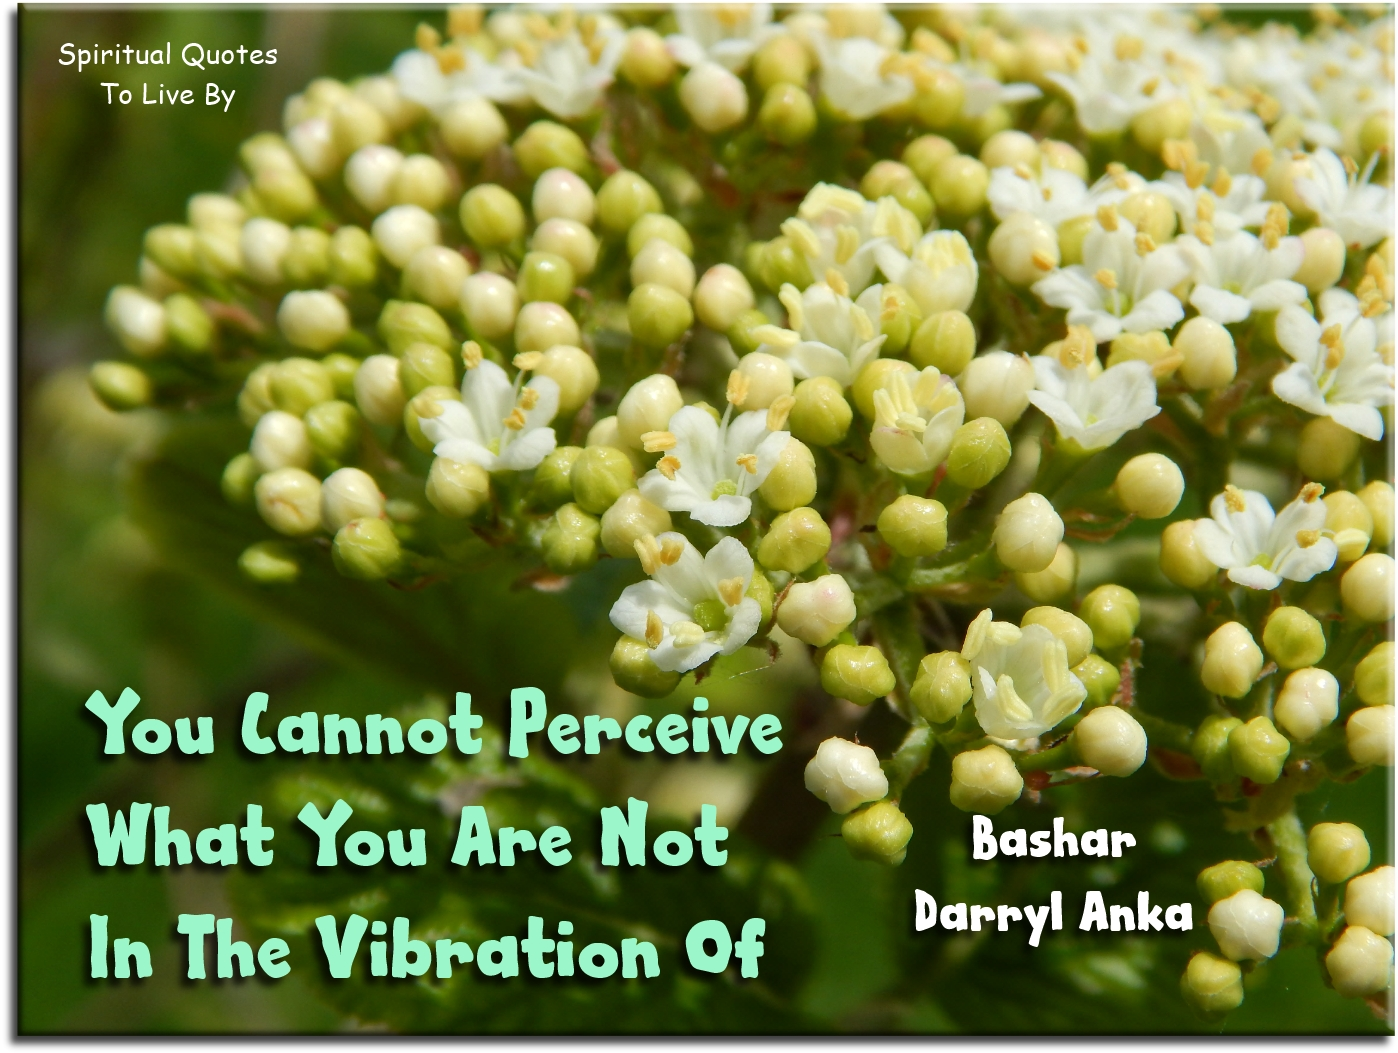 Bashar-Darryl Anka quote: You cannot perceive what you are not in the vibration of. Spiritual Quotes To Live By